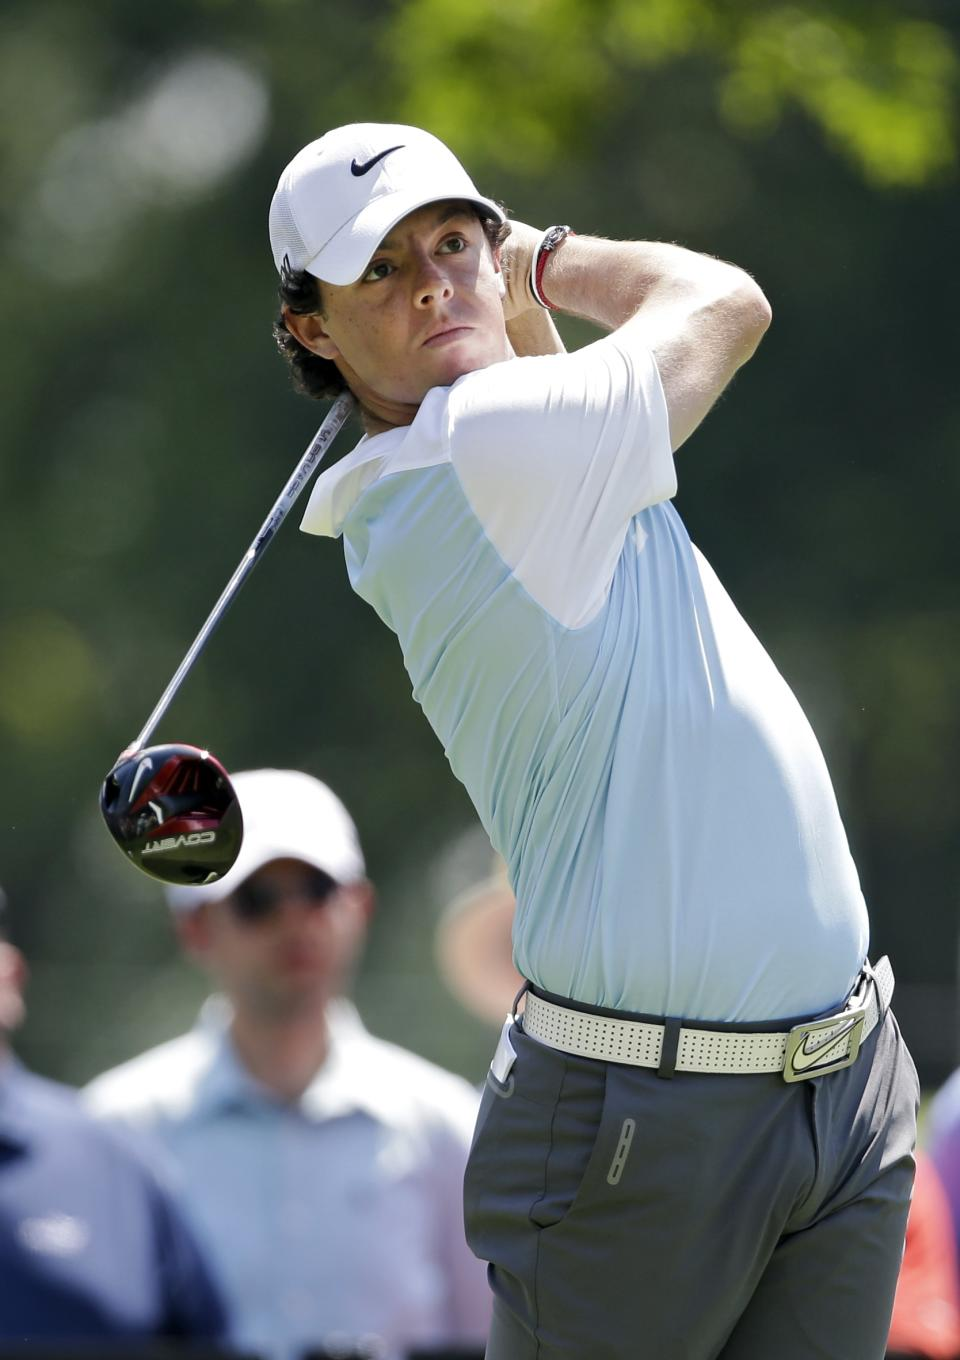 Rory McElroy, from Northern Ireland, watches his tee shot on the ninth hole during the first round of the Bridgestone Invitational golf tournament on Thursday, Aug. 1, 2013, at Firestone Country Club in Akron, Ohio. (AP Photo/Mark Duncan)